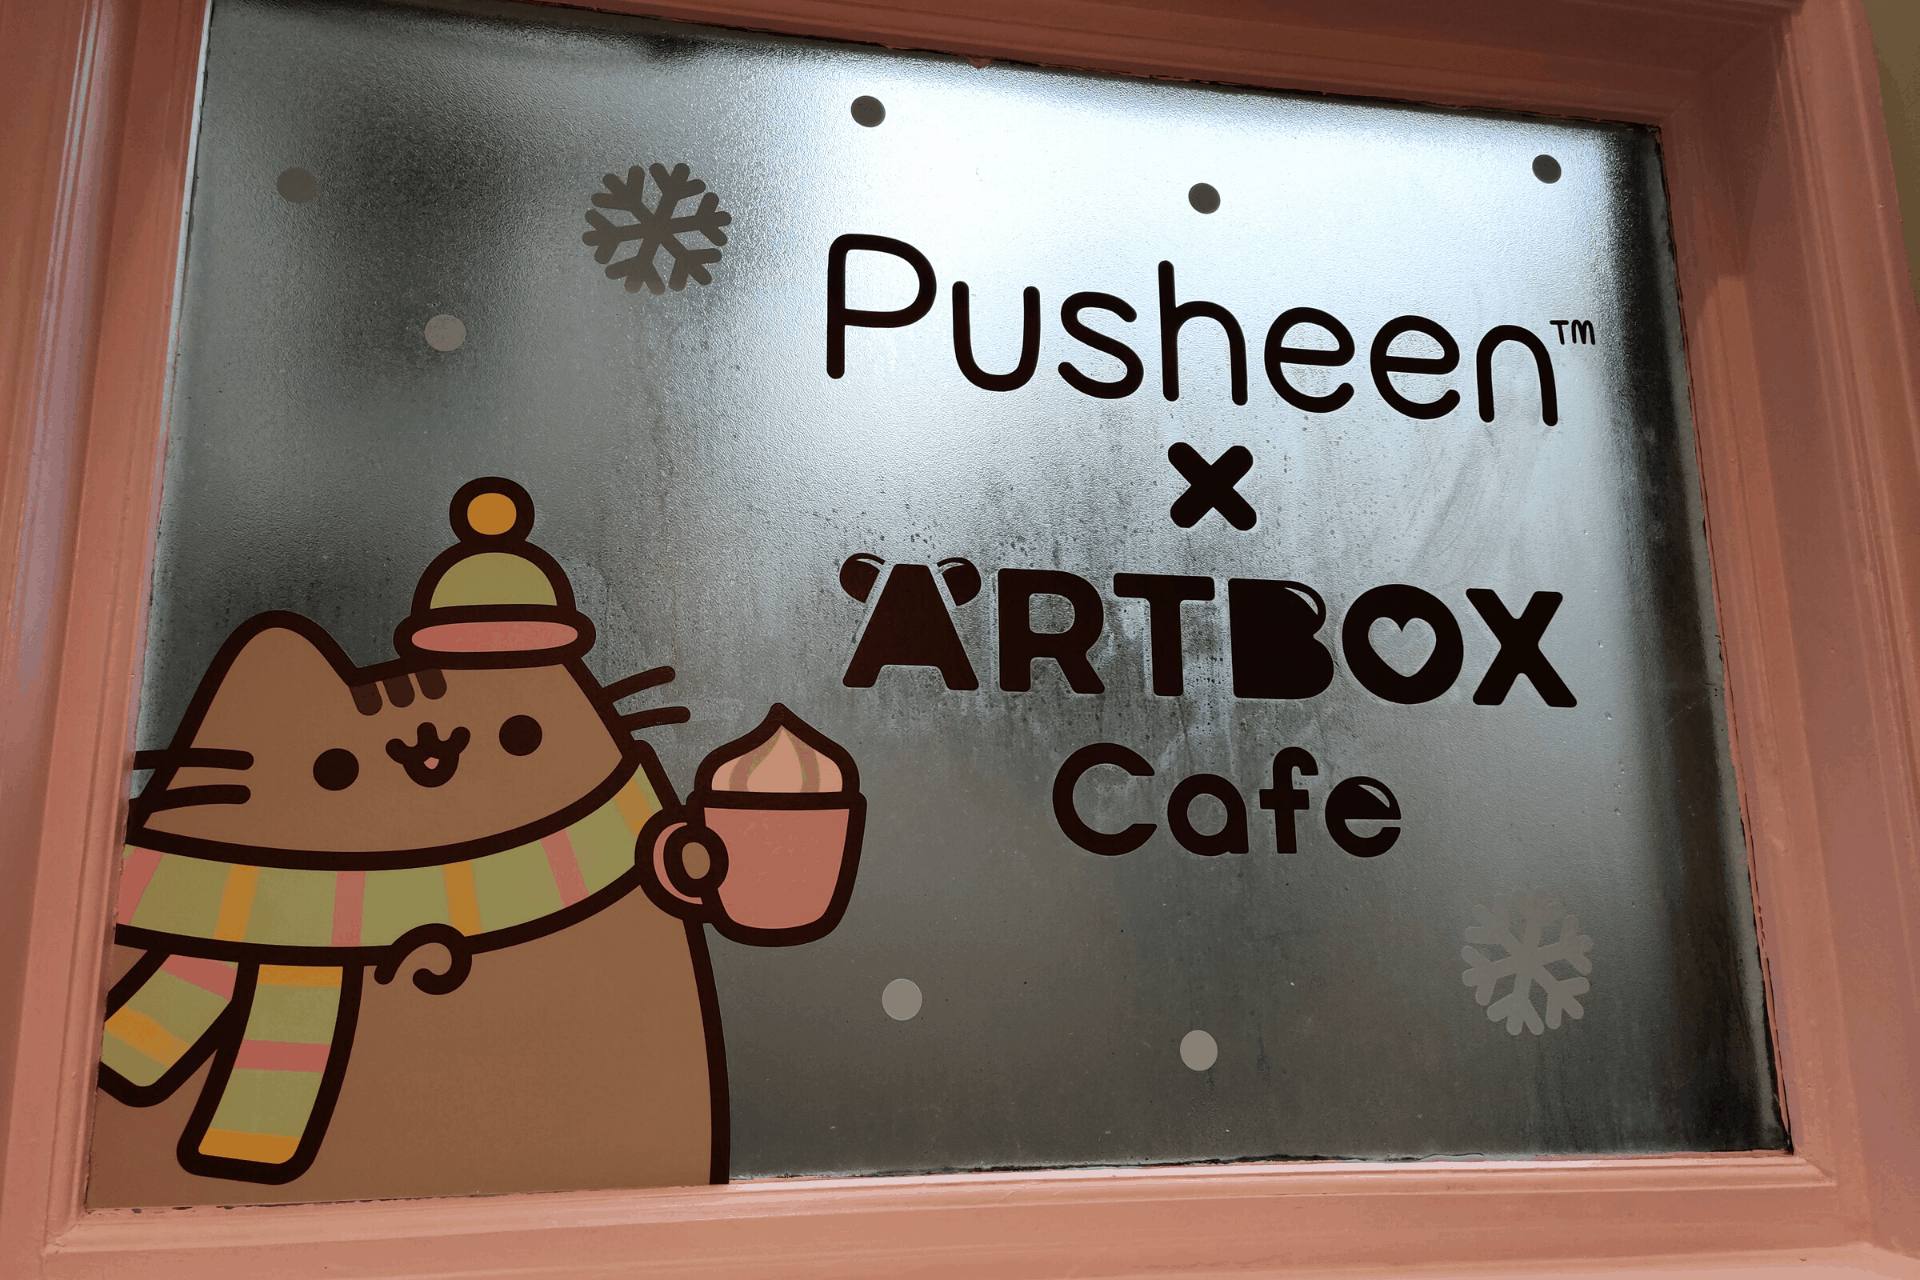 The window in the stairwell at the Pusheen cafe